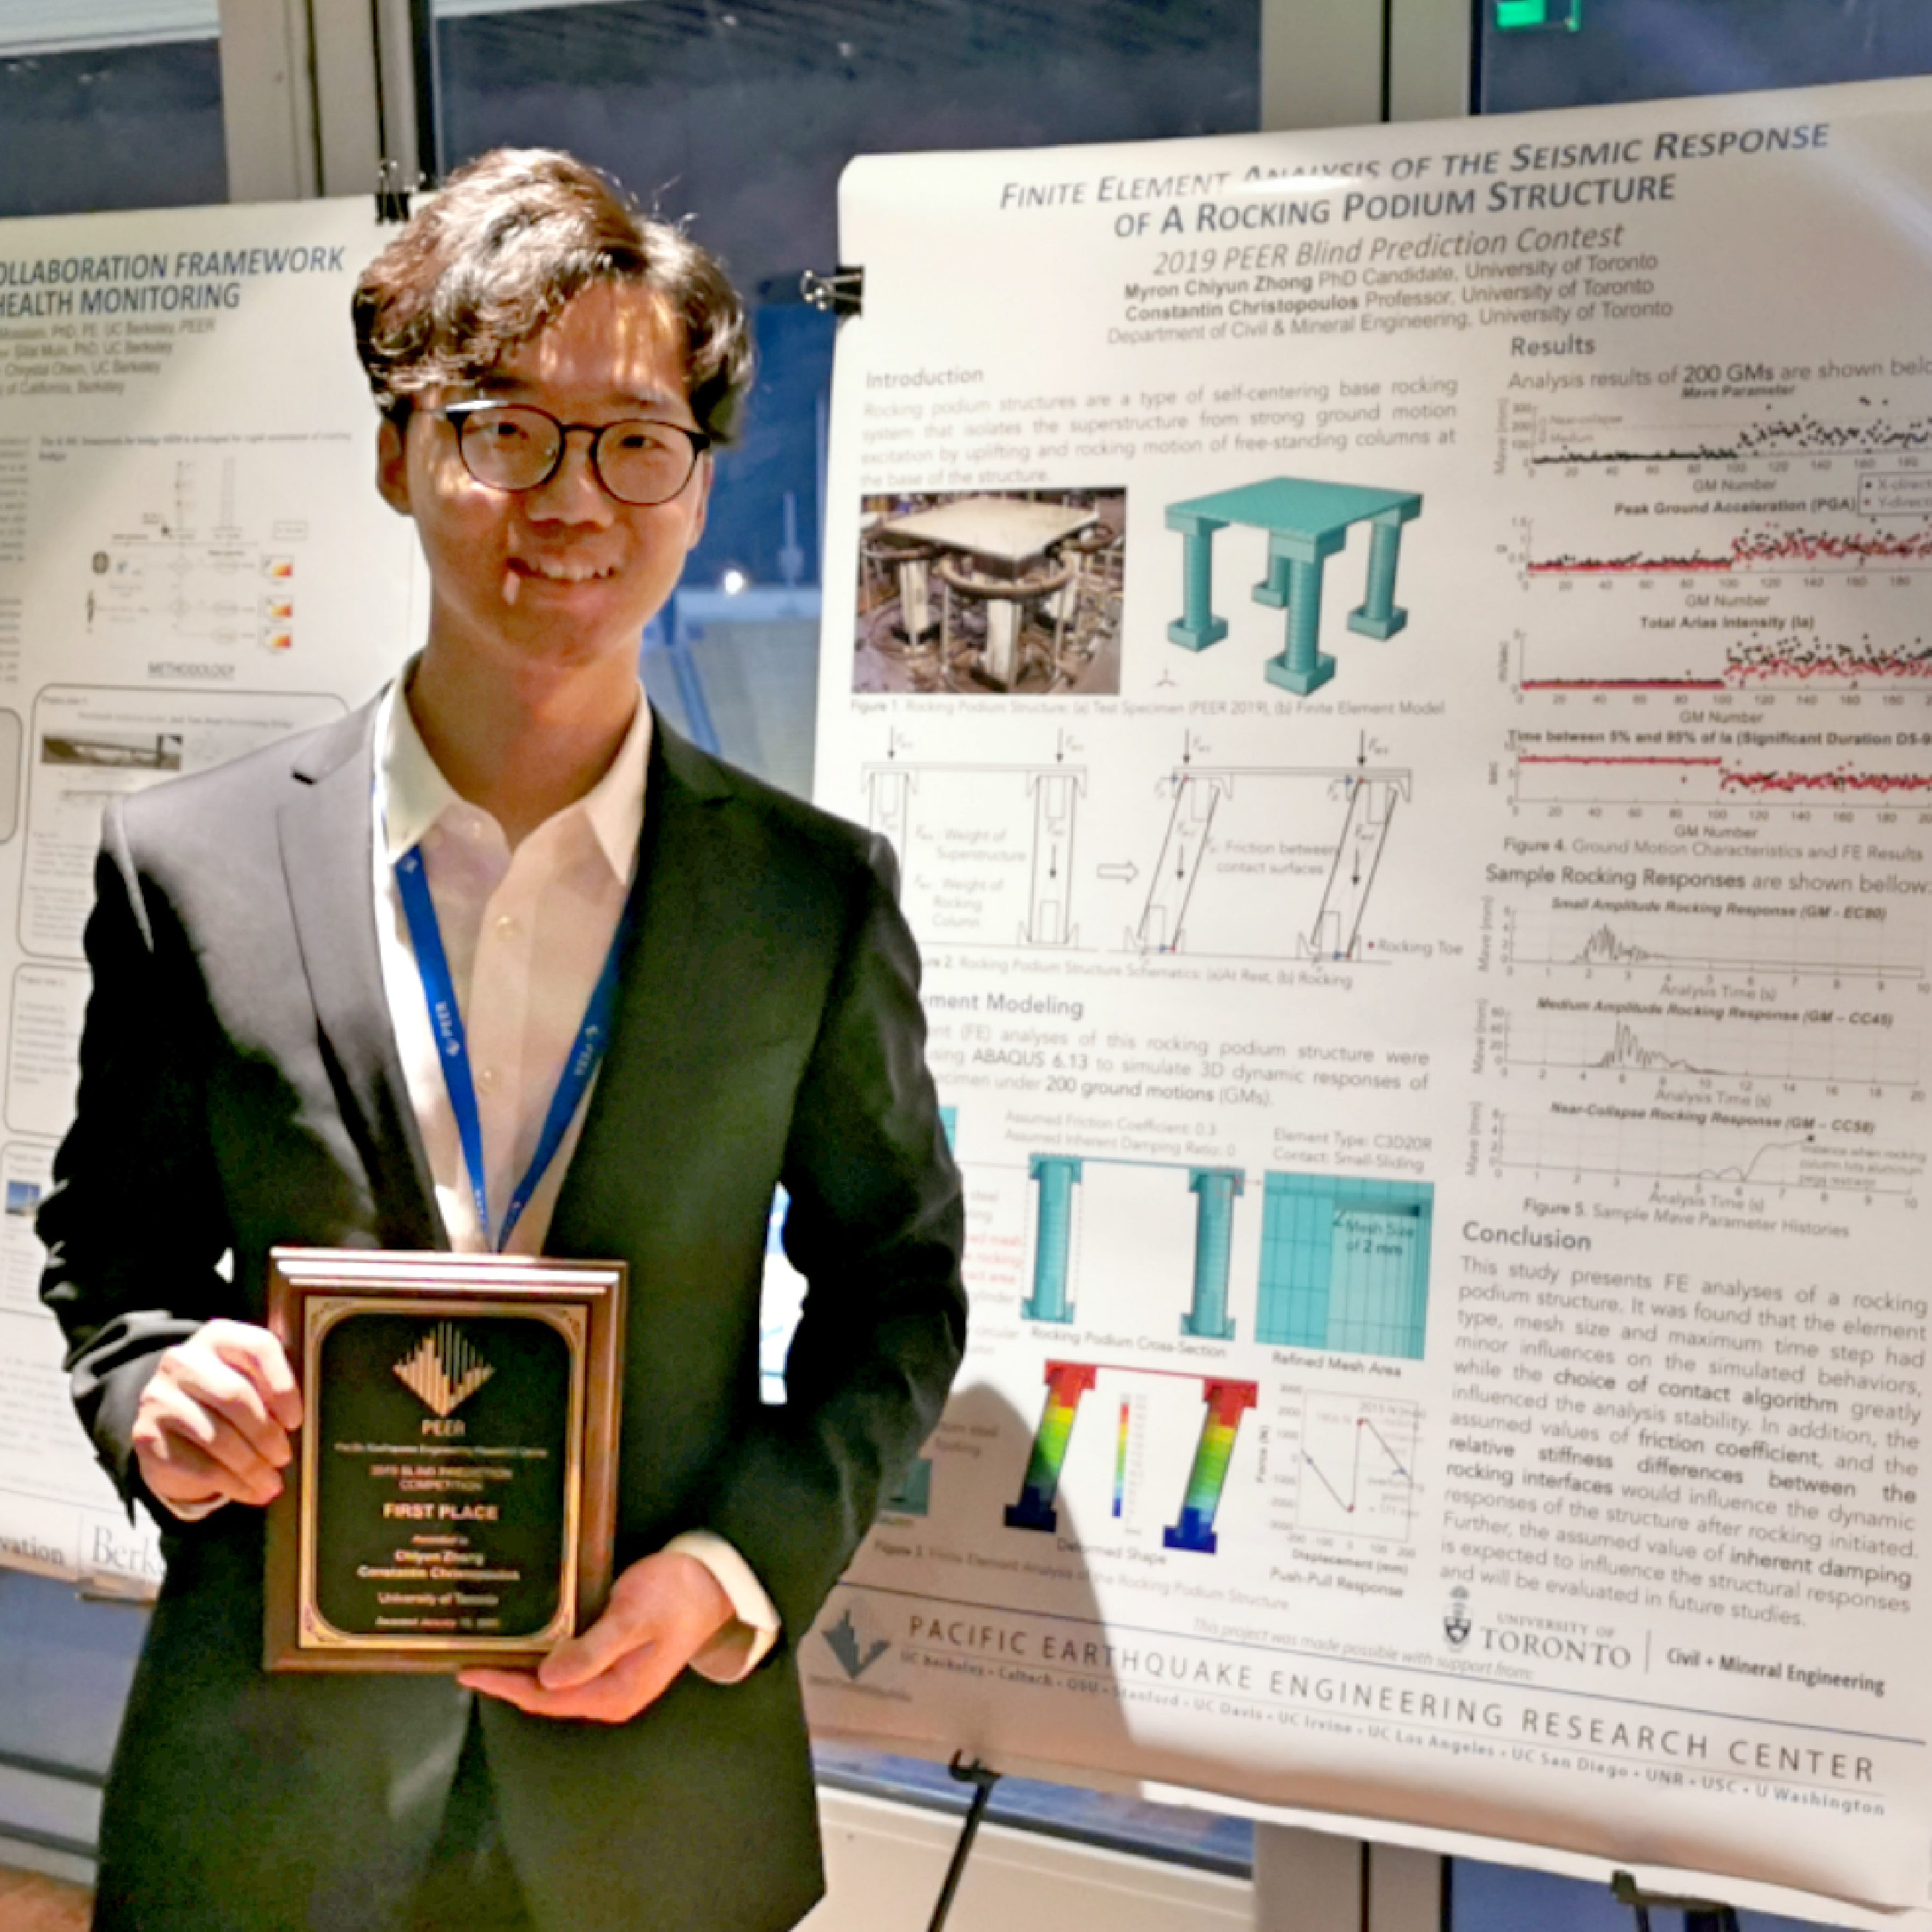 Myron Chiyun Zhong, a CivE PhD candidate, holds the award for the Pacific Earthquake Engineering Research (PEER) Center's Blind Prediction Contest after a ceremony at the University of California, Berkeley the evening of Thursday, January 16 2020. Zhang, along with supervisor Prof. Constantin Christopoulos, submitted the most accurate prediction for an earthquake model based on shake table results. PHOTO: Courtesy Myron Chiyun Zhong